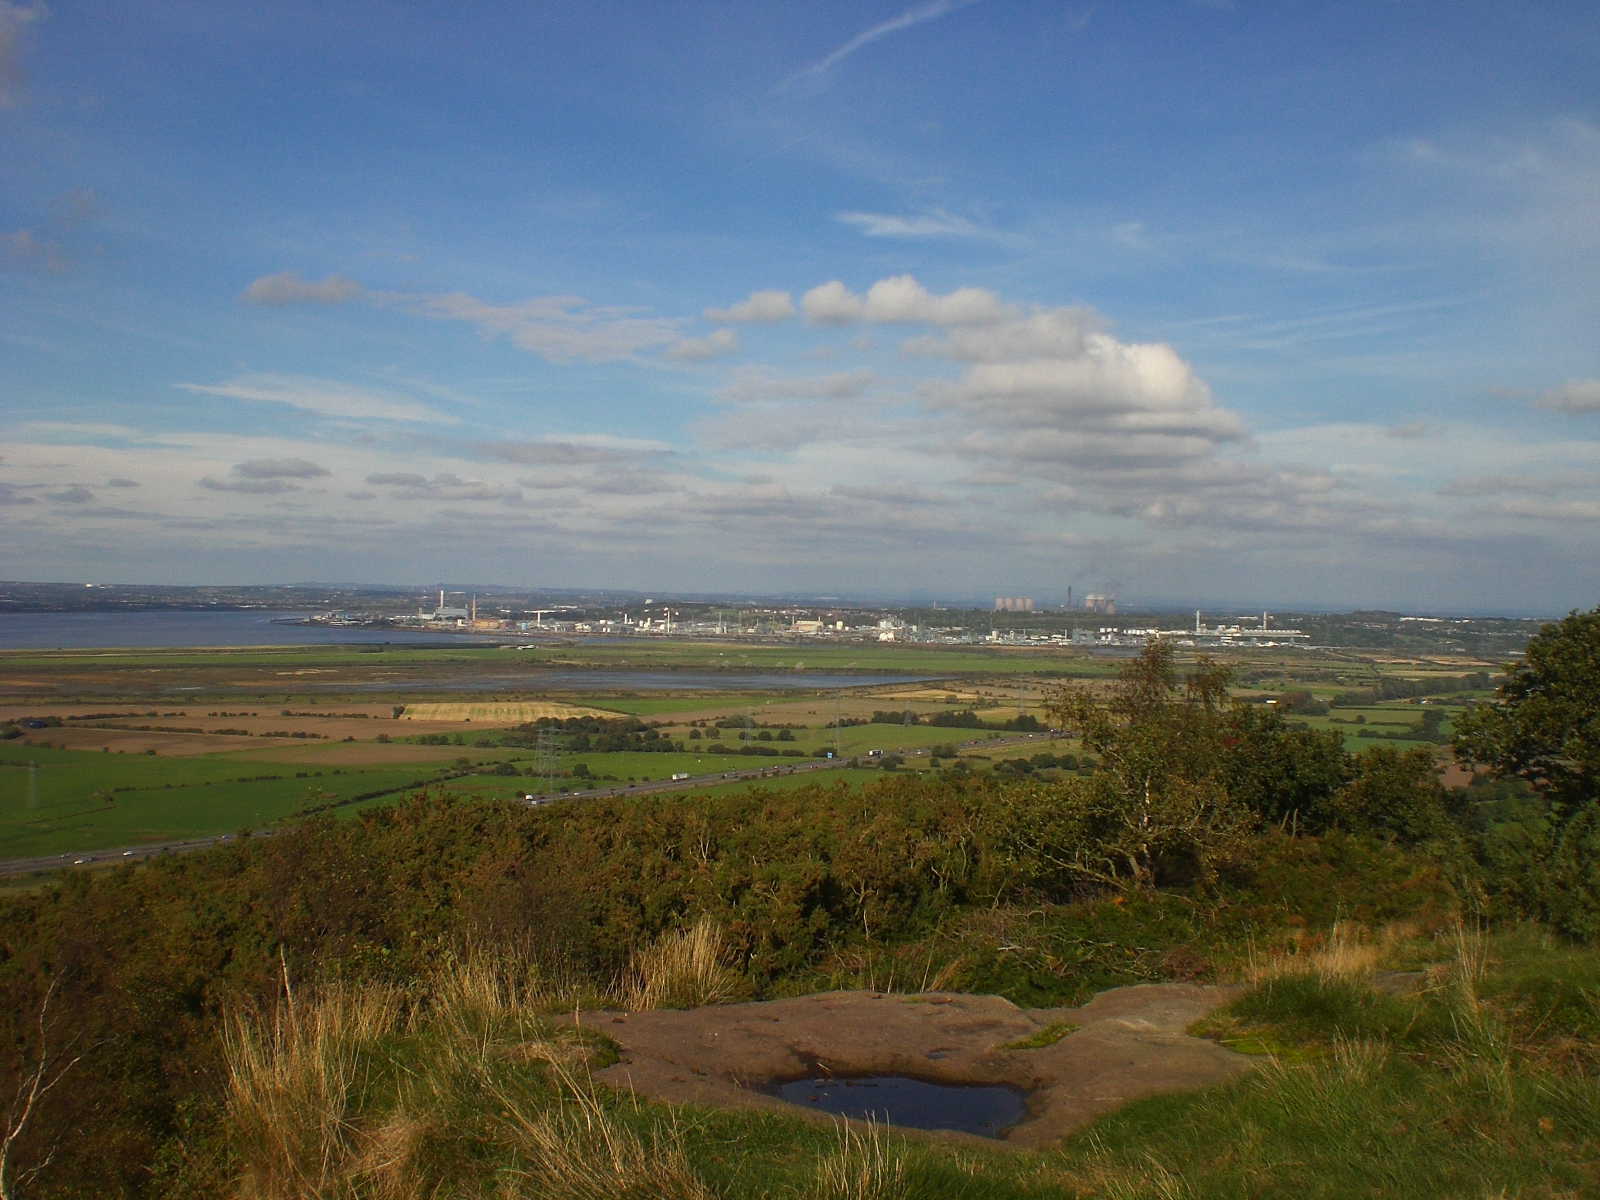 View towards Runcorn